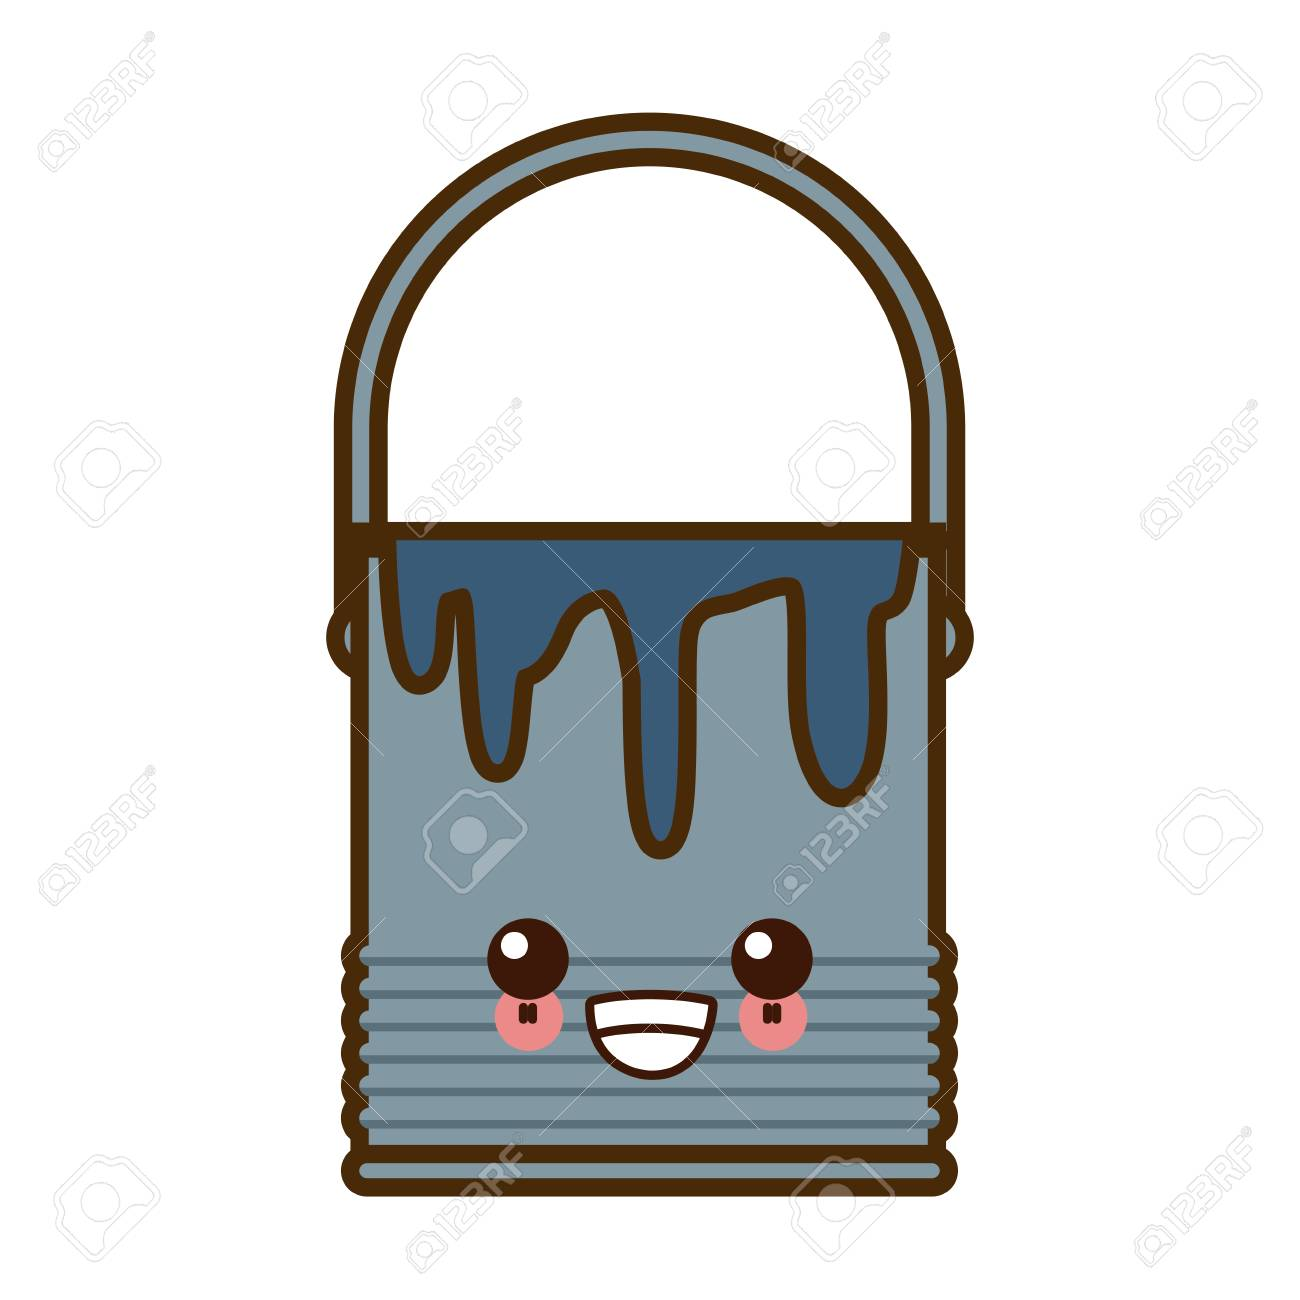 Paint Bucket Isolated Cute Cartoon Vector Illustration Graphic Royalty Free Cliparts Vectors And Stock Illustration Image 88982443